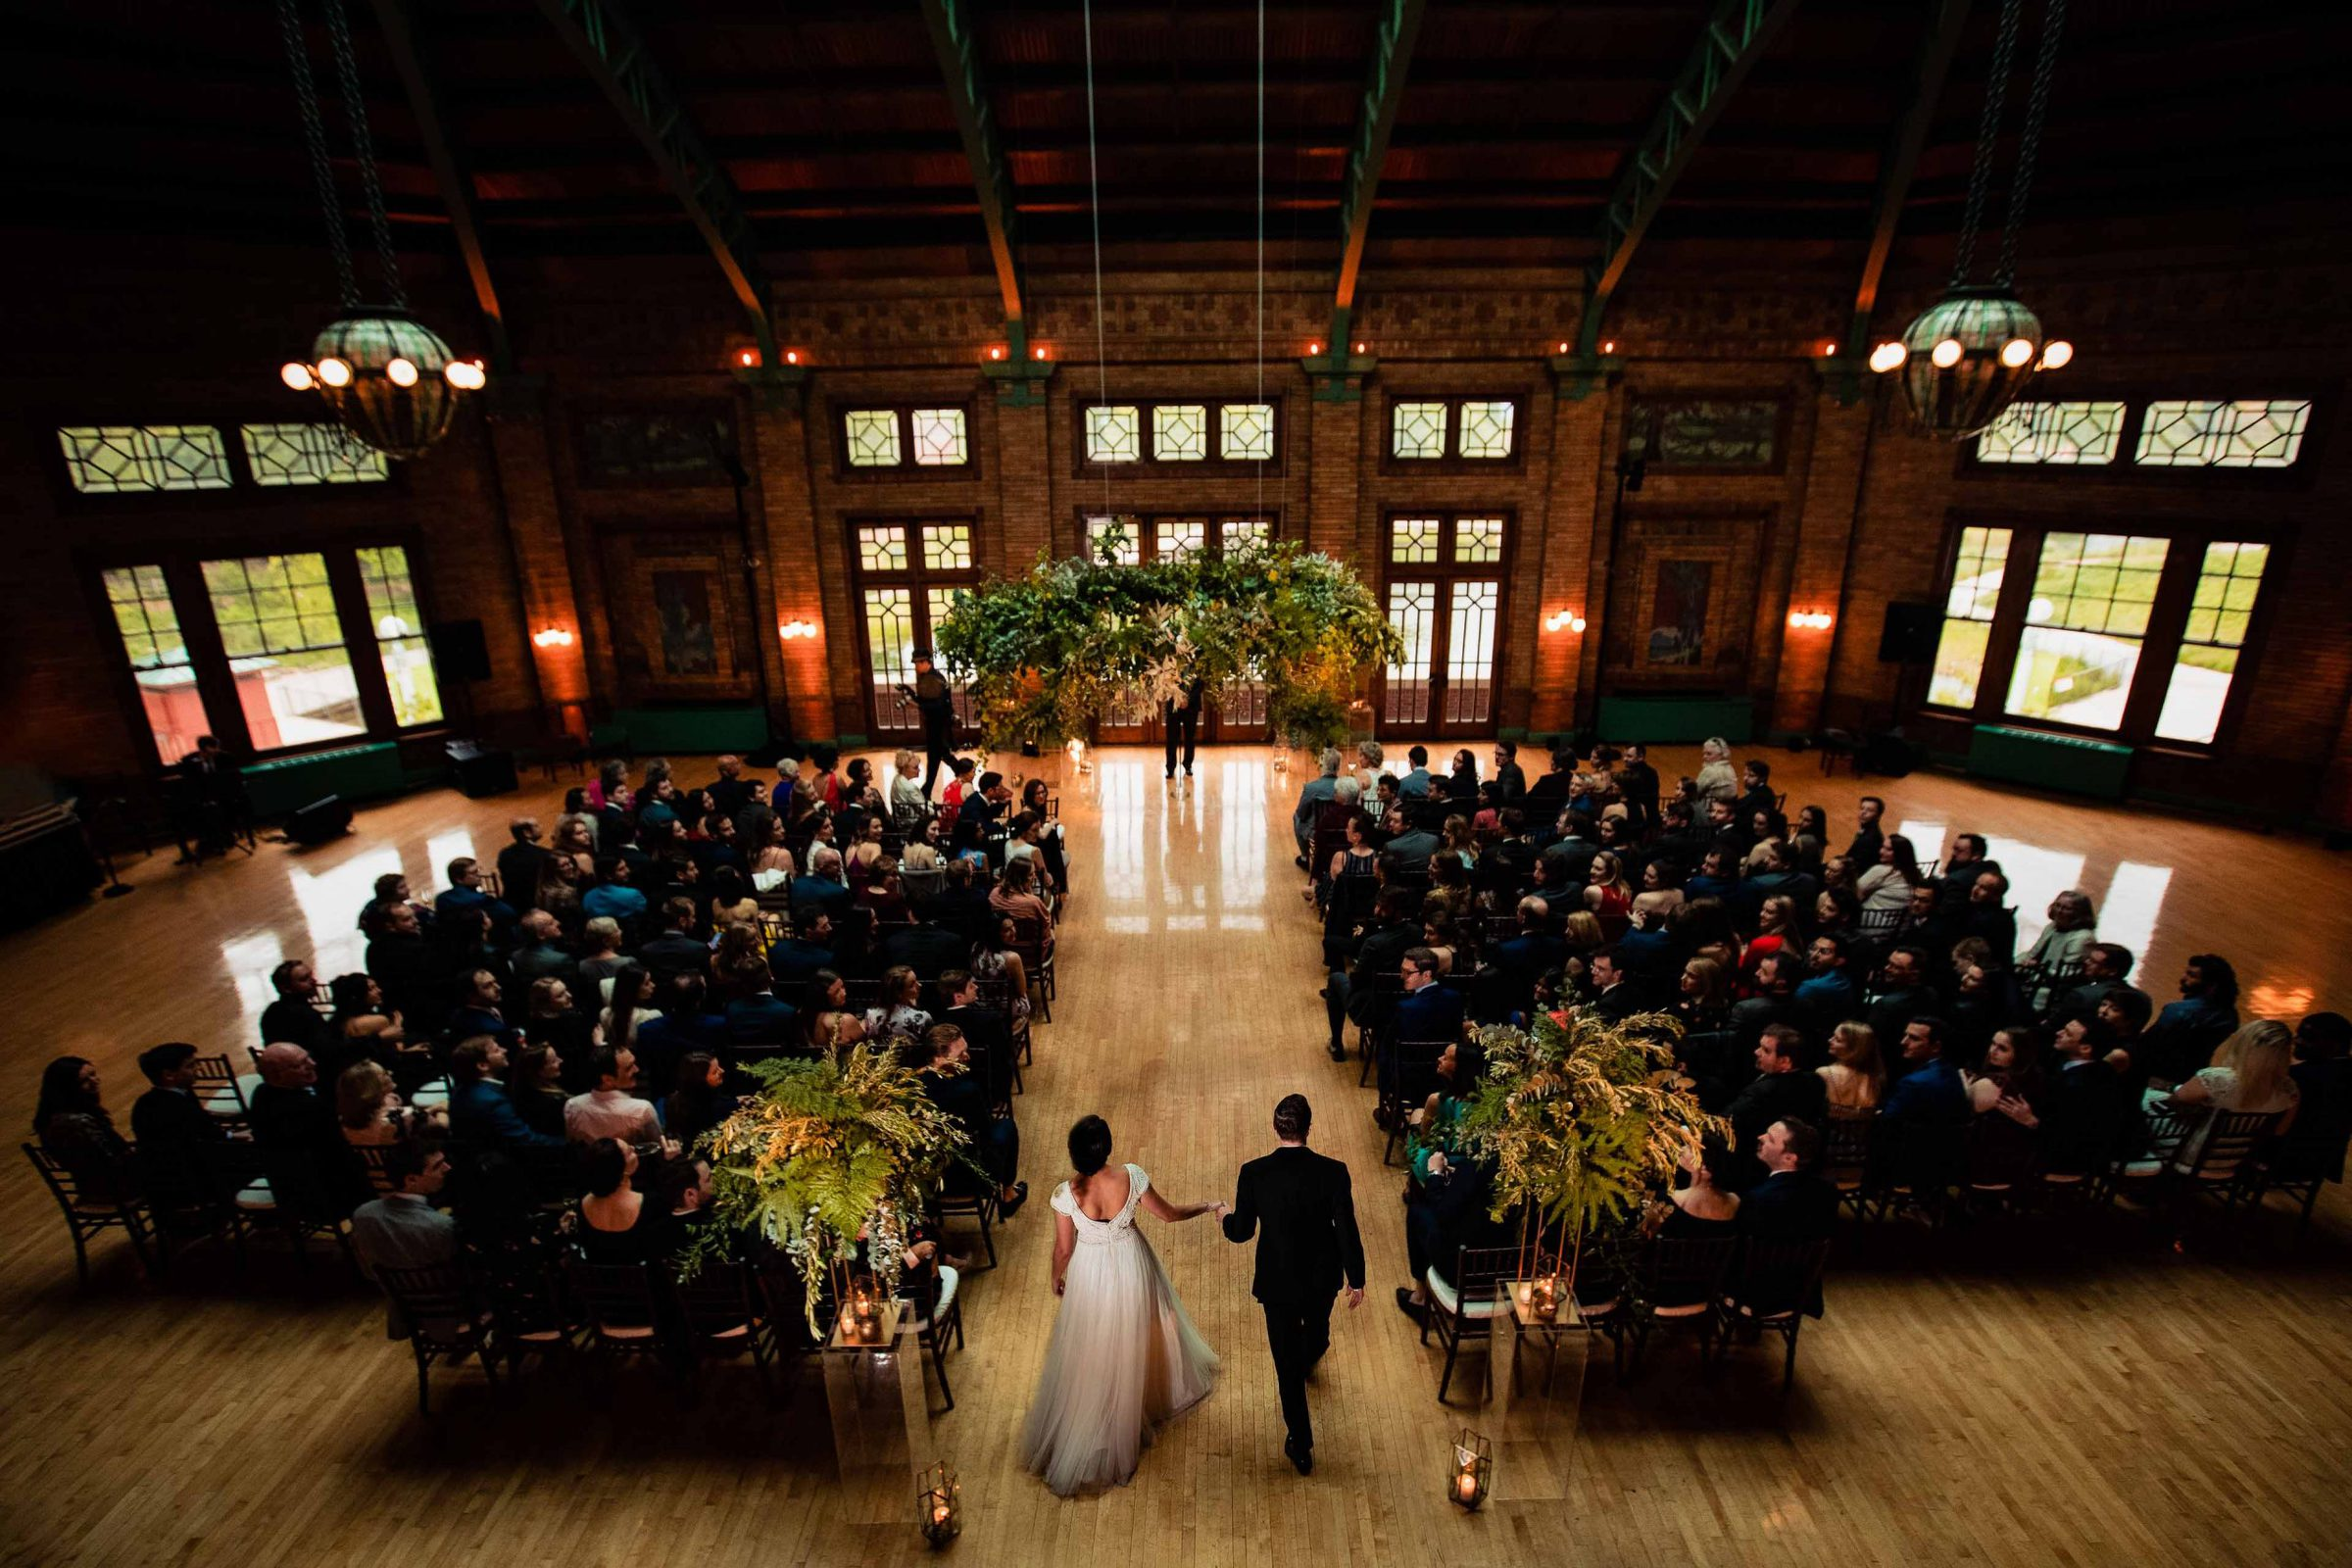 Epic entrance photo of a bride and groom walking into their wedding ceremony at Cafe Brauer in Chicago, Illinois.